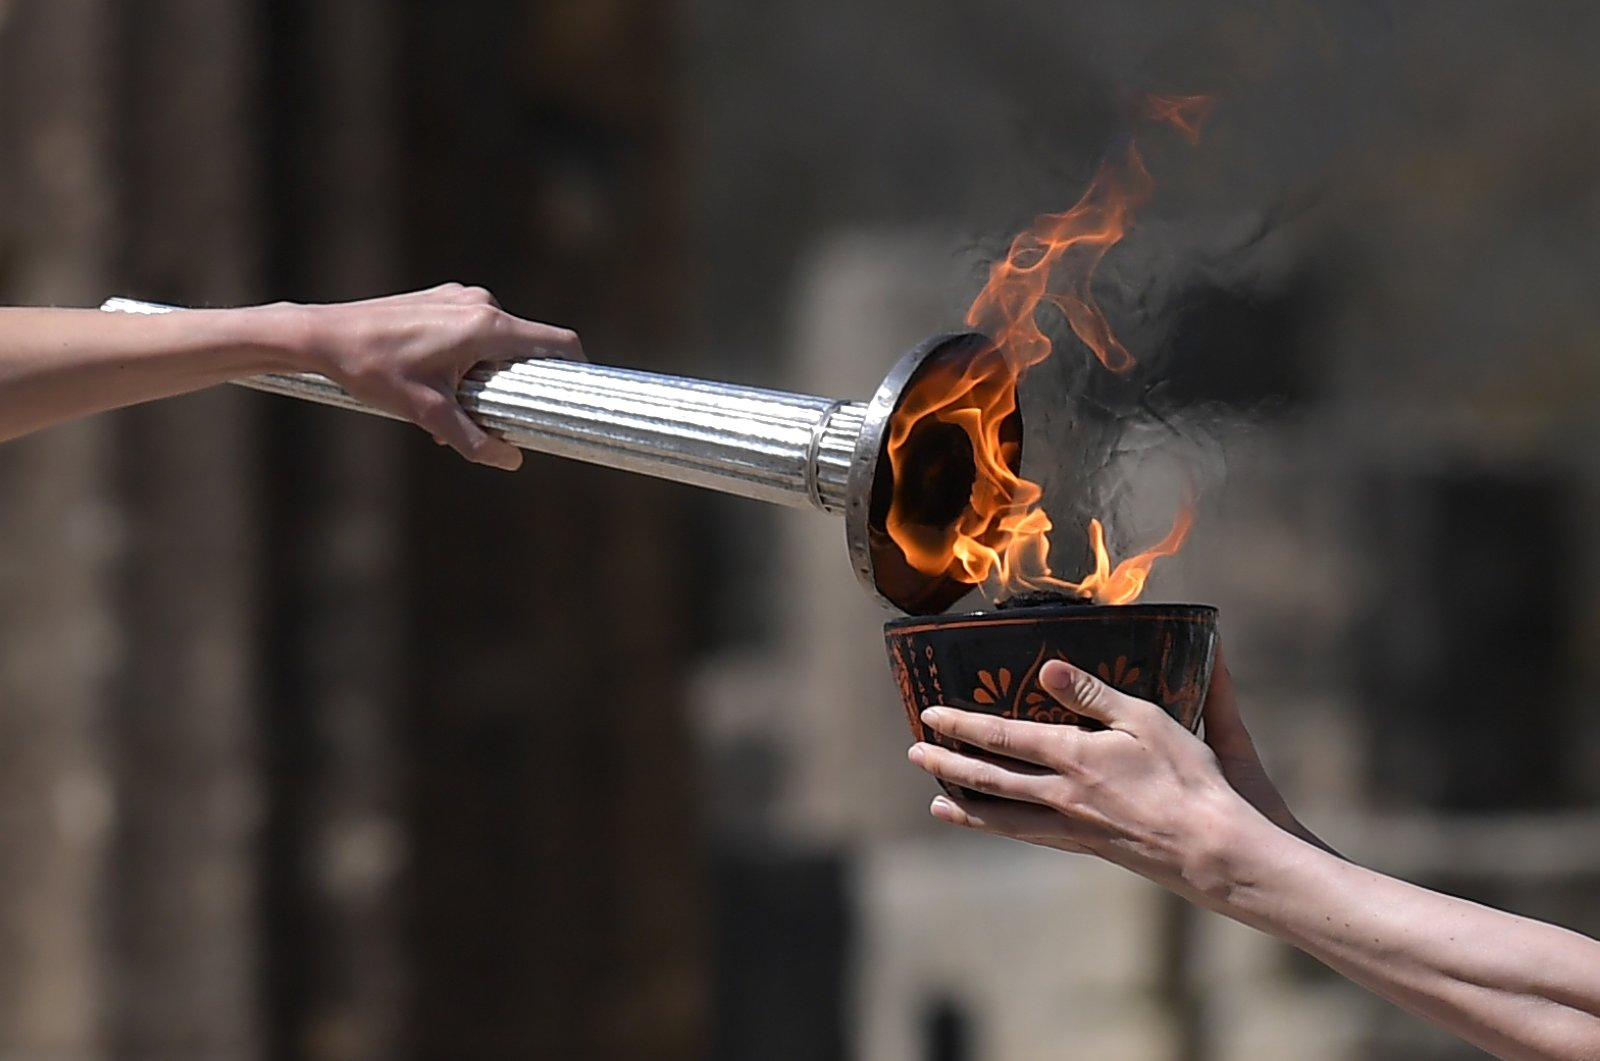 Particpants take part in the Olympic flame lighting ceremony in ancient Olympia, ahead of Tokyo 2020 Olympic Games, March 12, 2020. (AFP Photo)